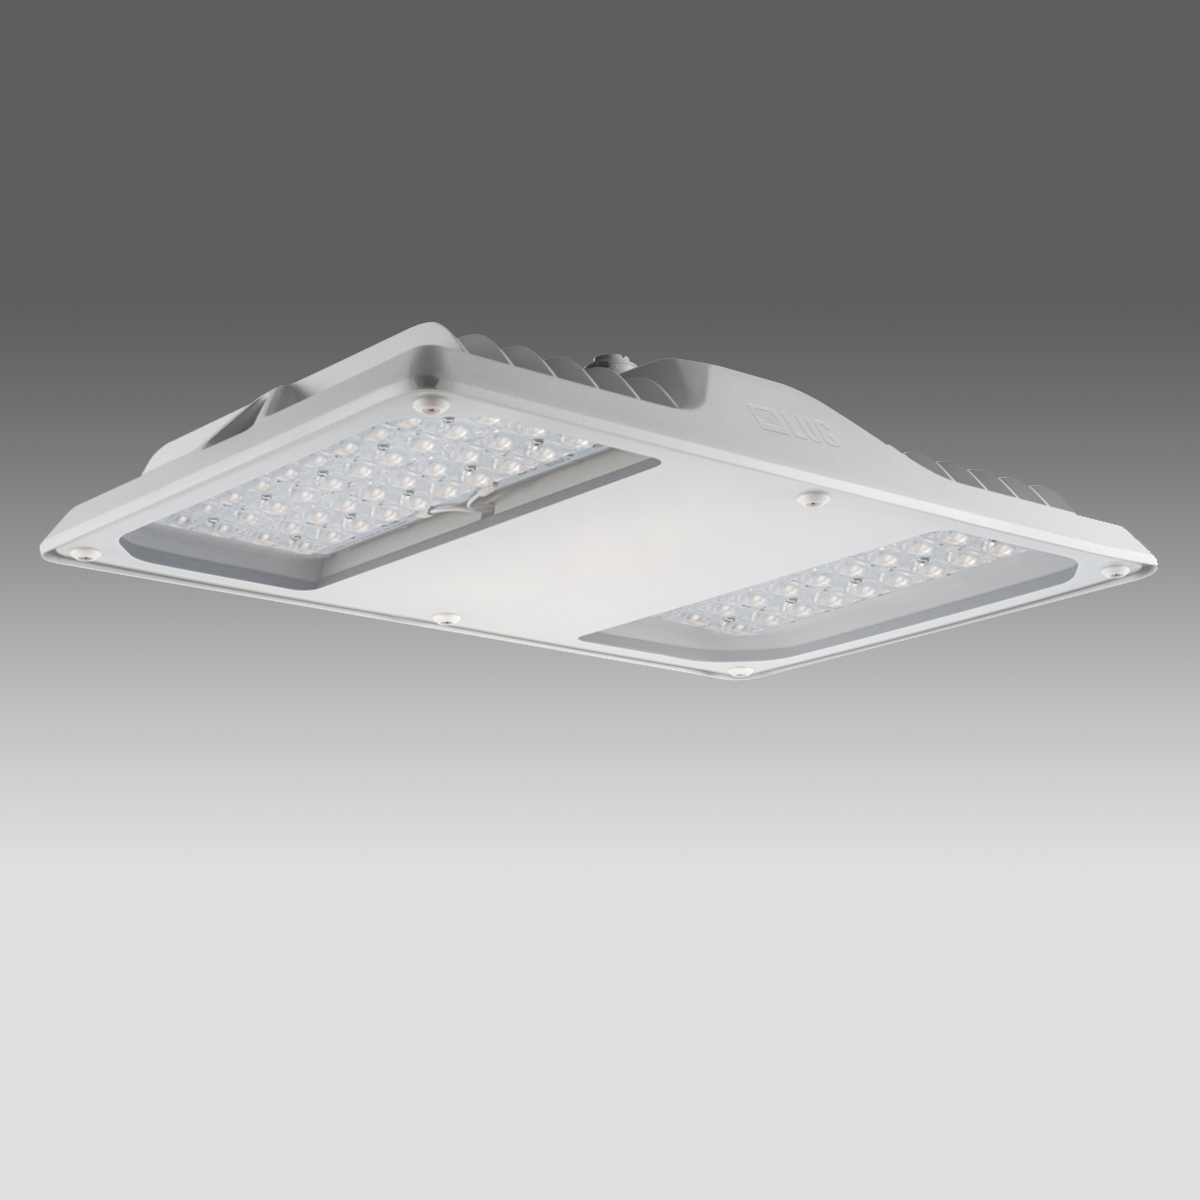 1 Stk Arktur Square PLUS LED 206W 24650lm/757 EVG IP65120x40° LIG4252014